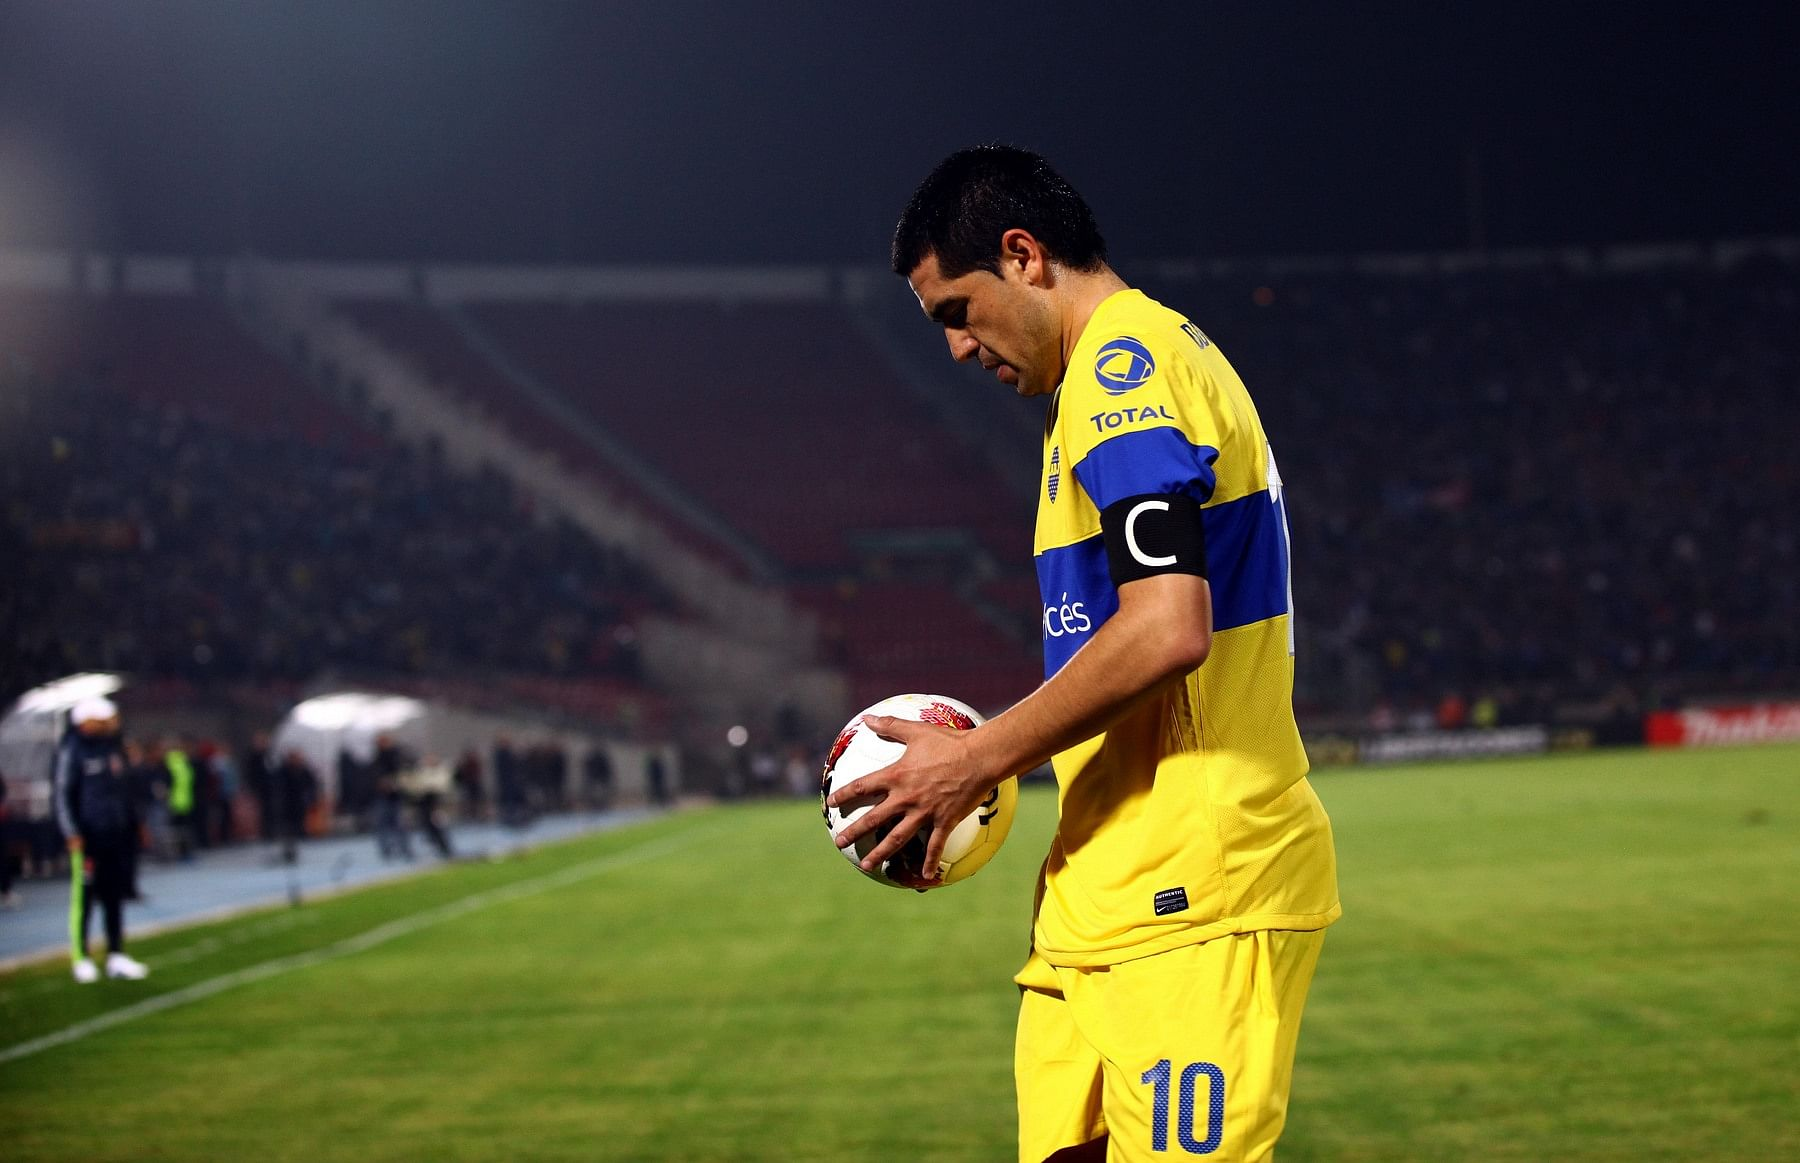 Juan Riquelme: An Artista who lived in his own world